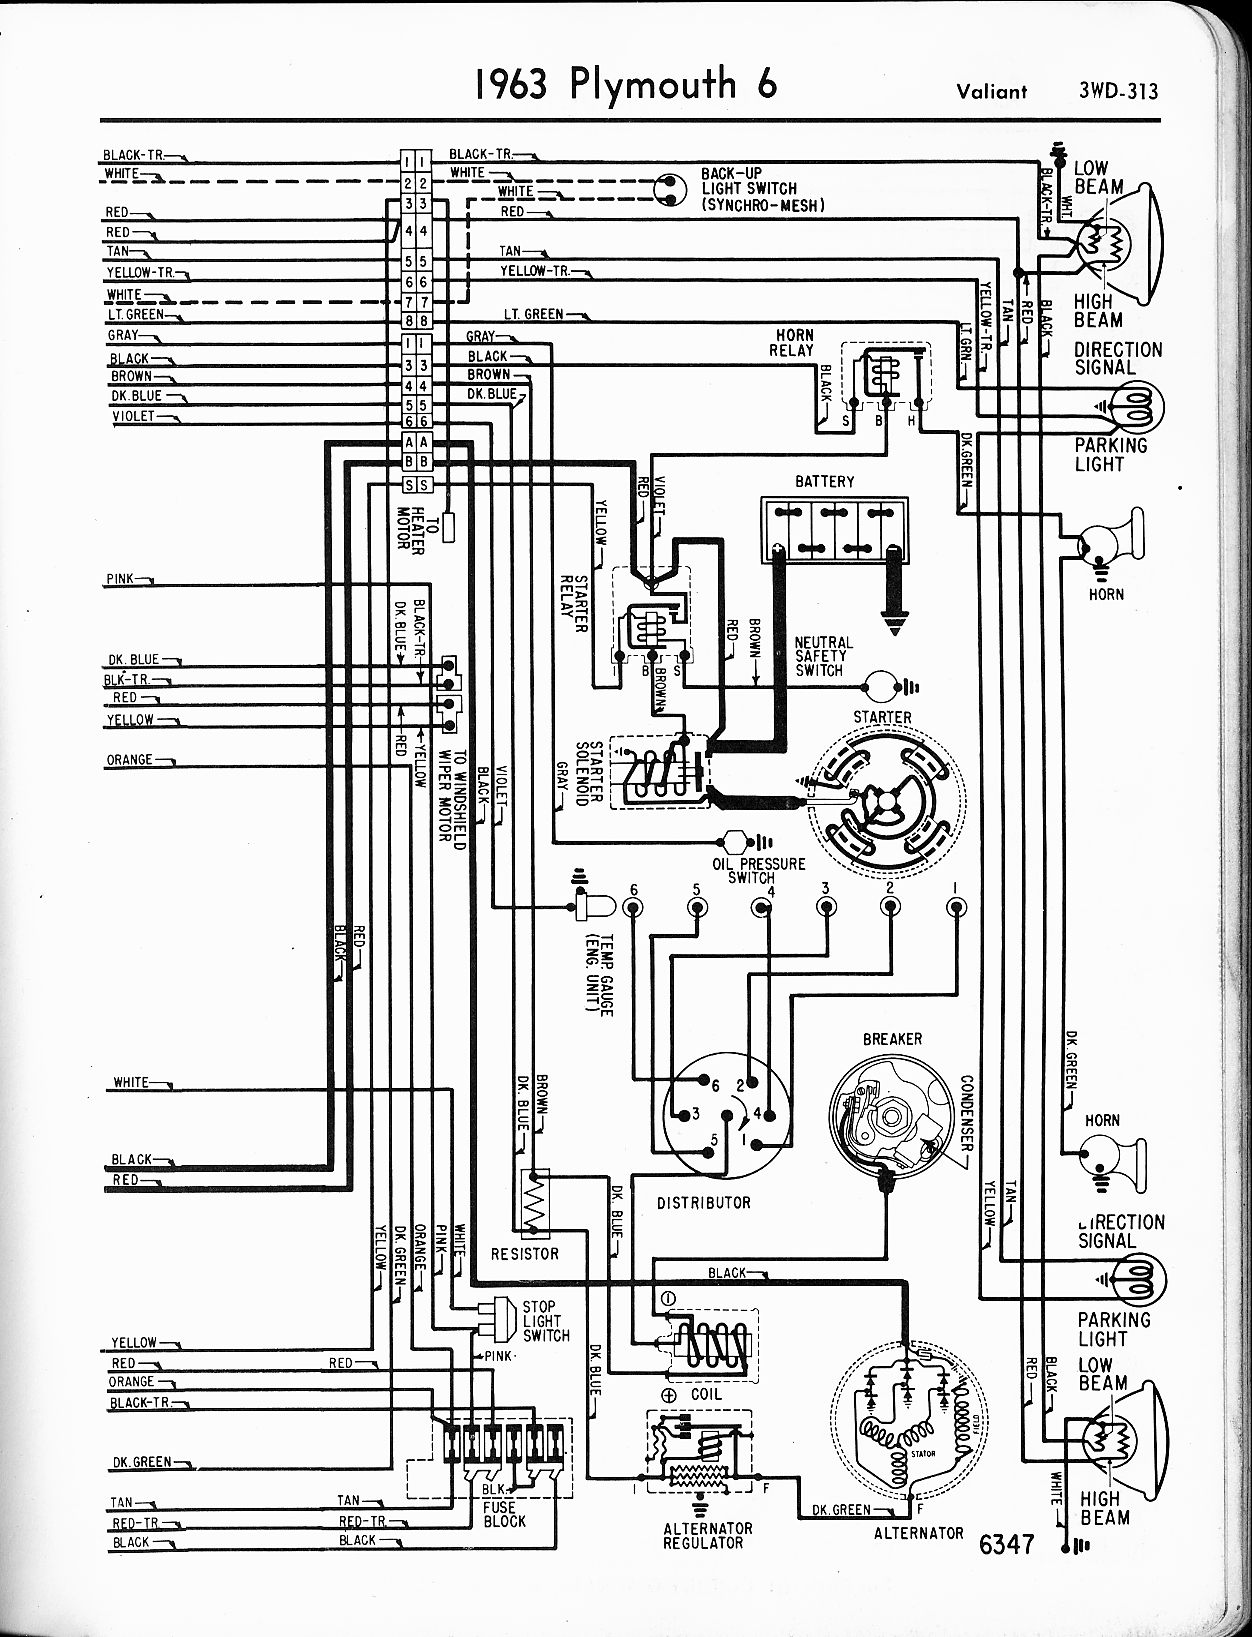 wiring diagram for 1970 plymouth barracuda wiring wiring wiring diagram for 1970 plymouth barracuda wiring wiring diagrams